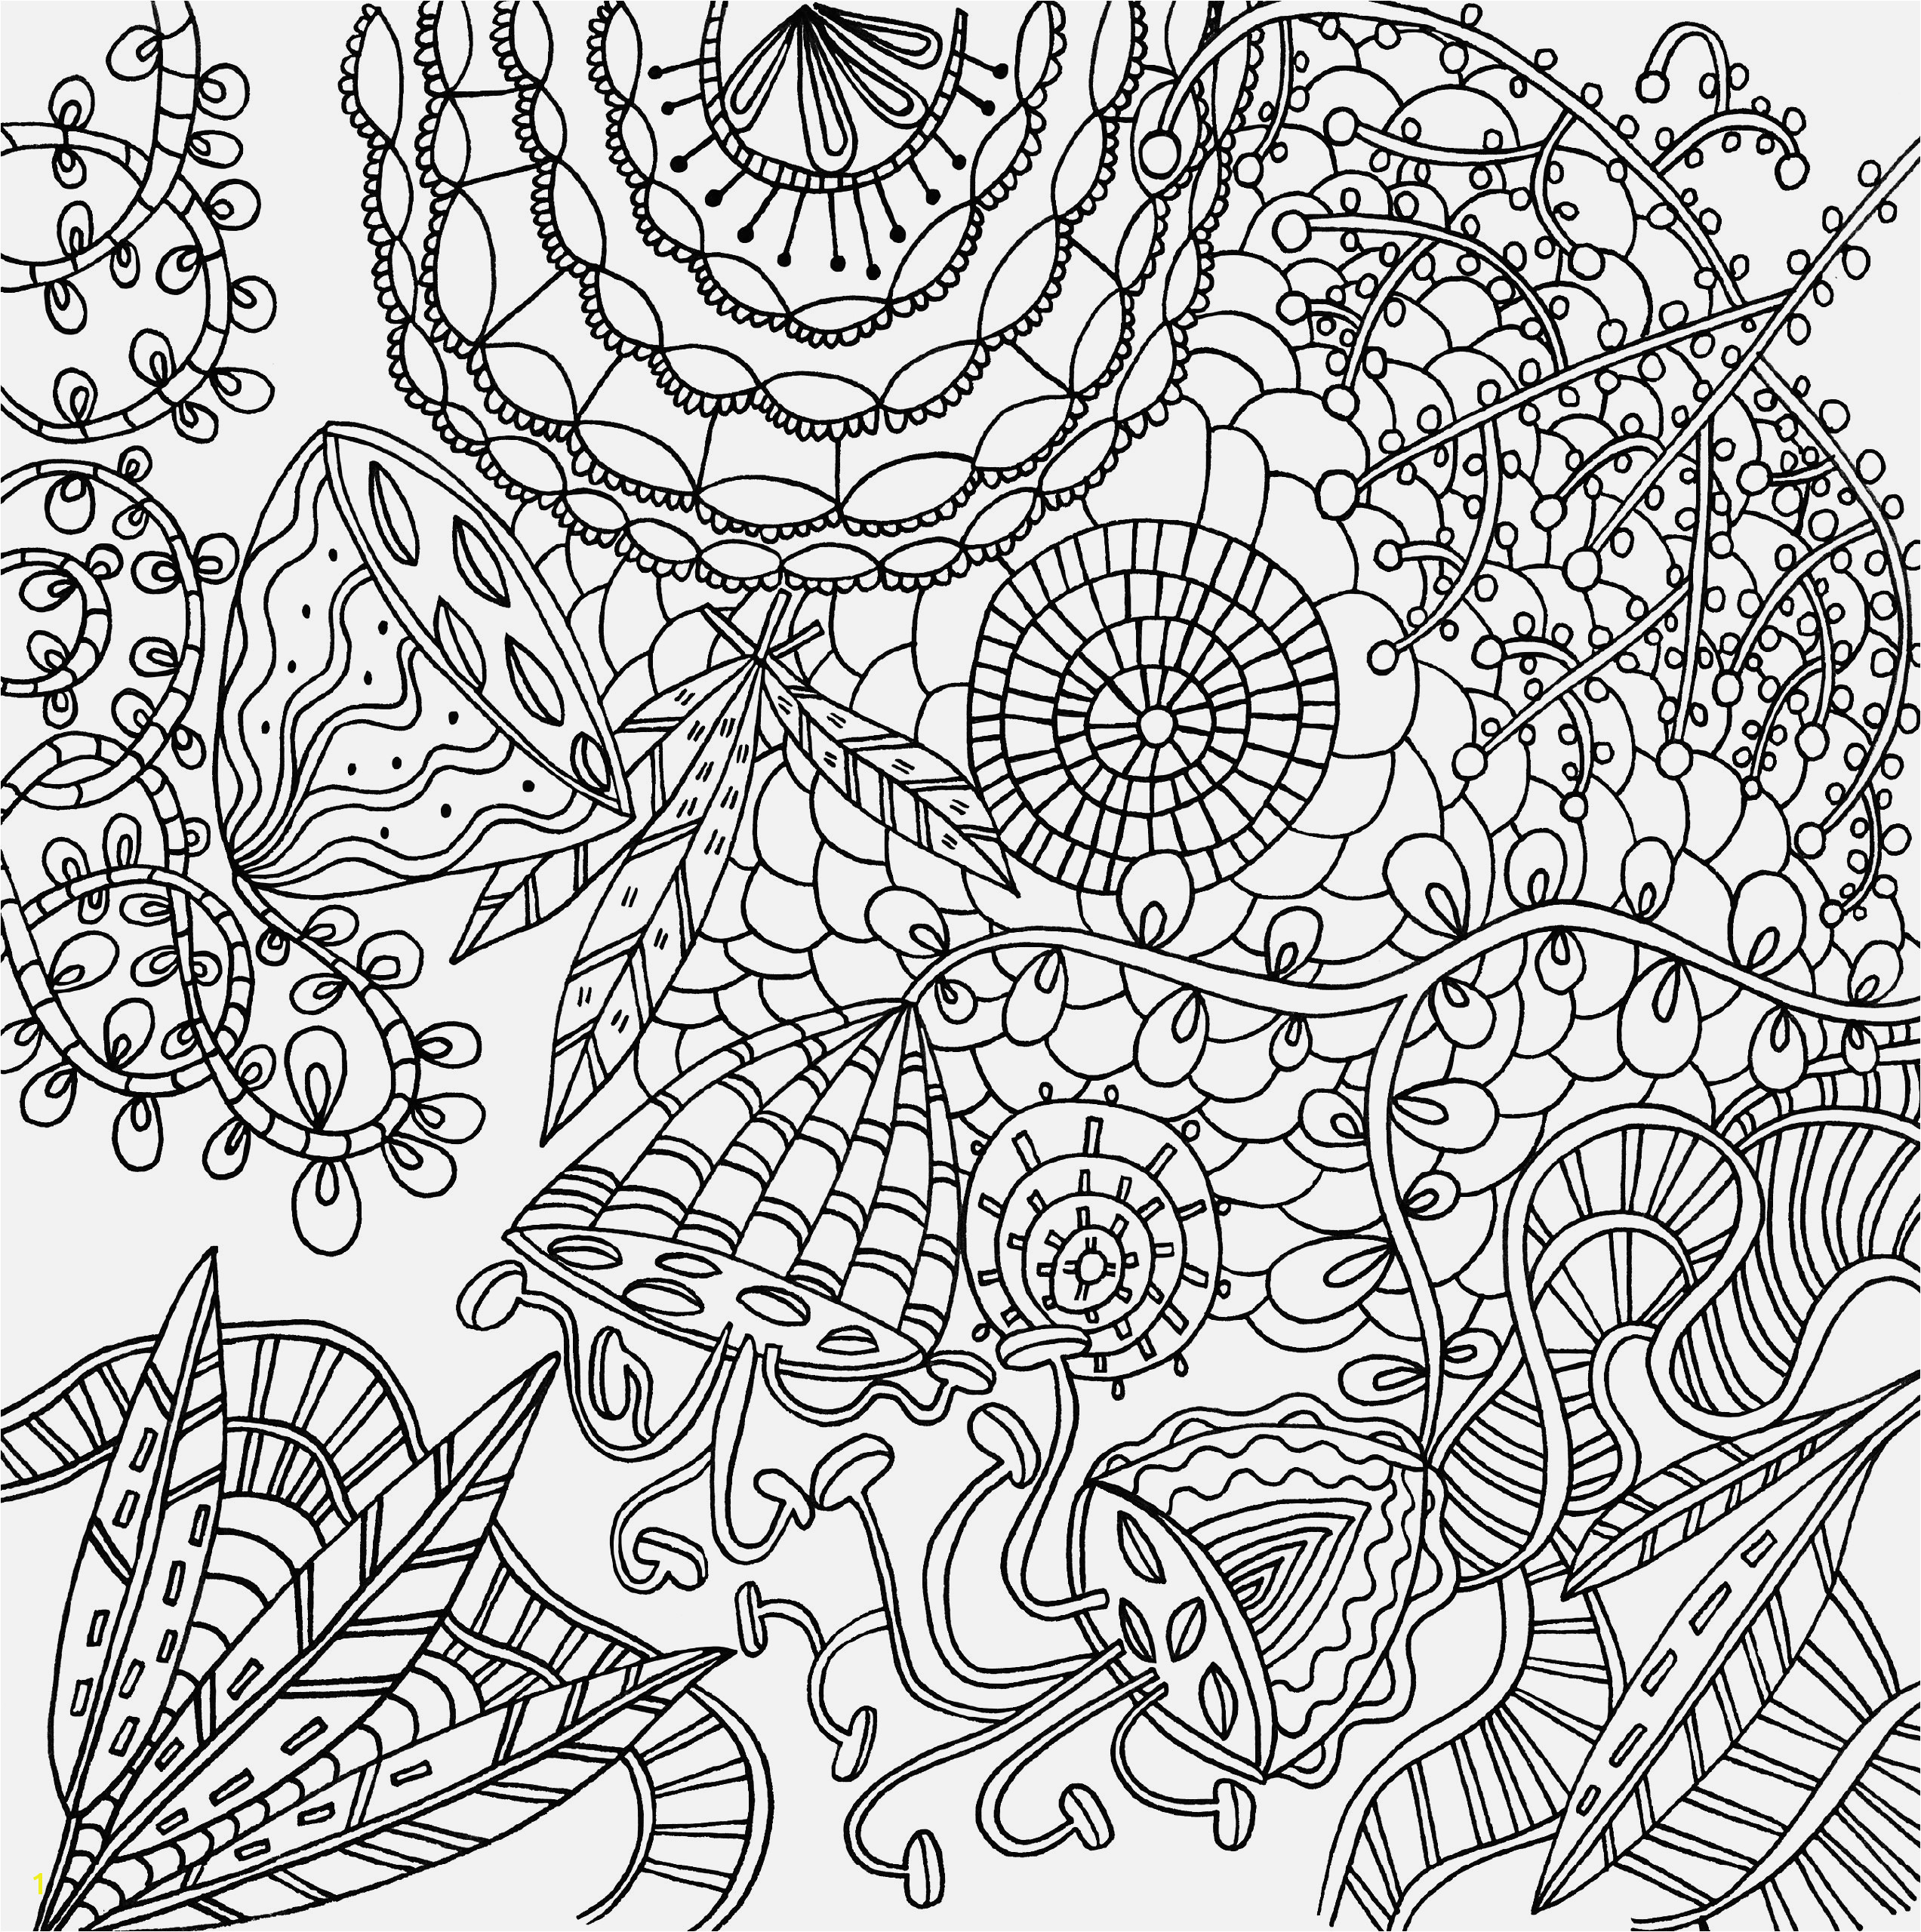 Stress Relief Coloring Books the First Ever Custom Serenity Adult Coloring Book 31 Stress Relieving Designs